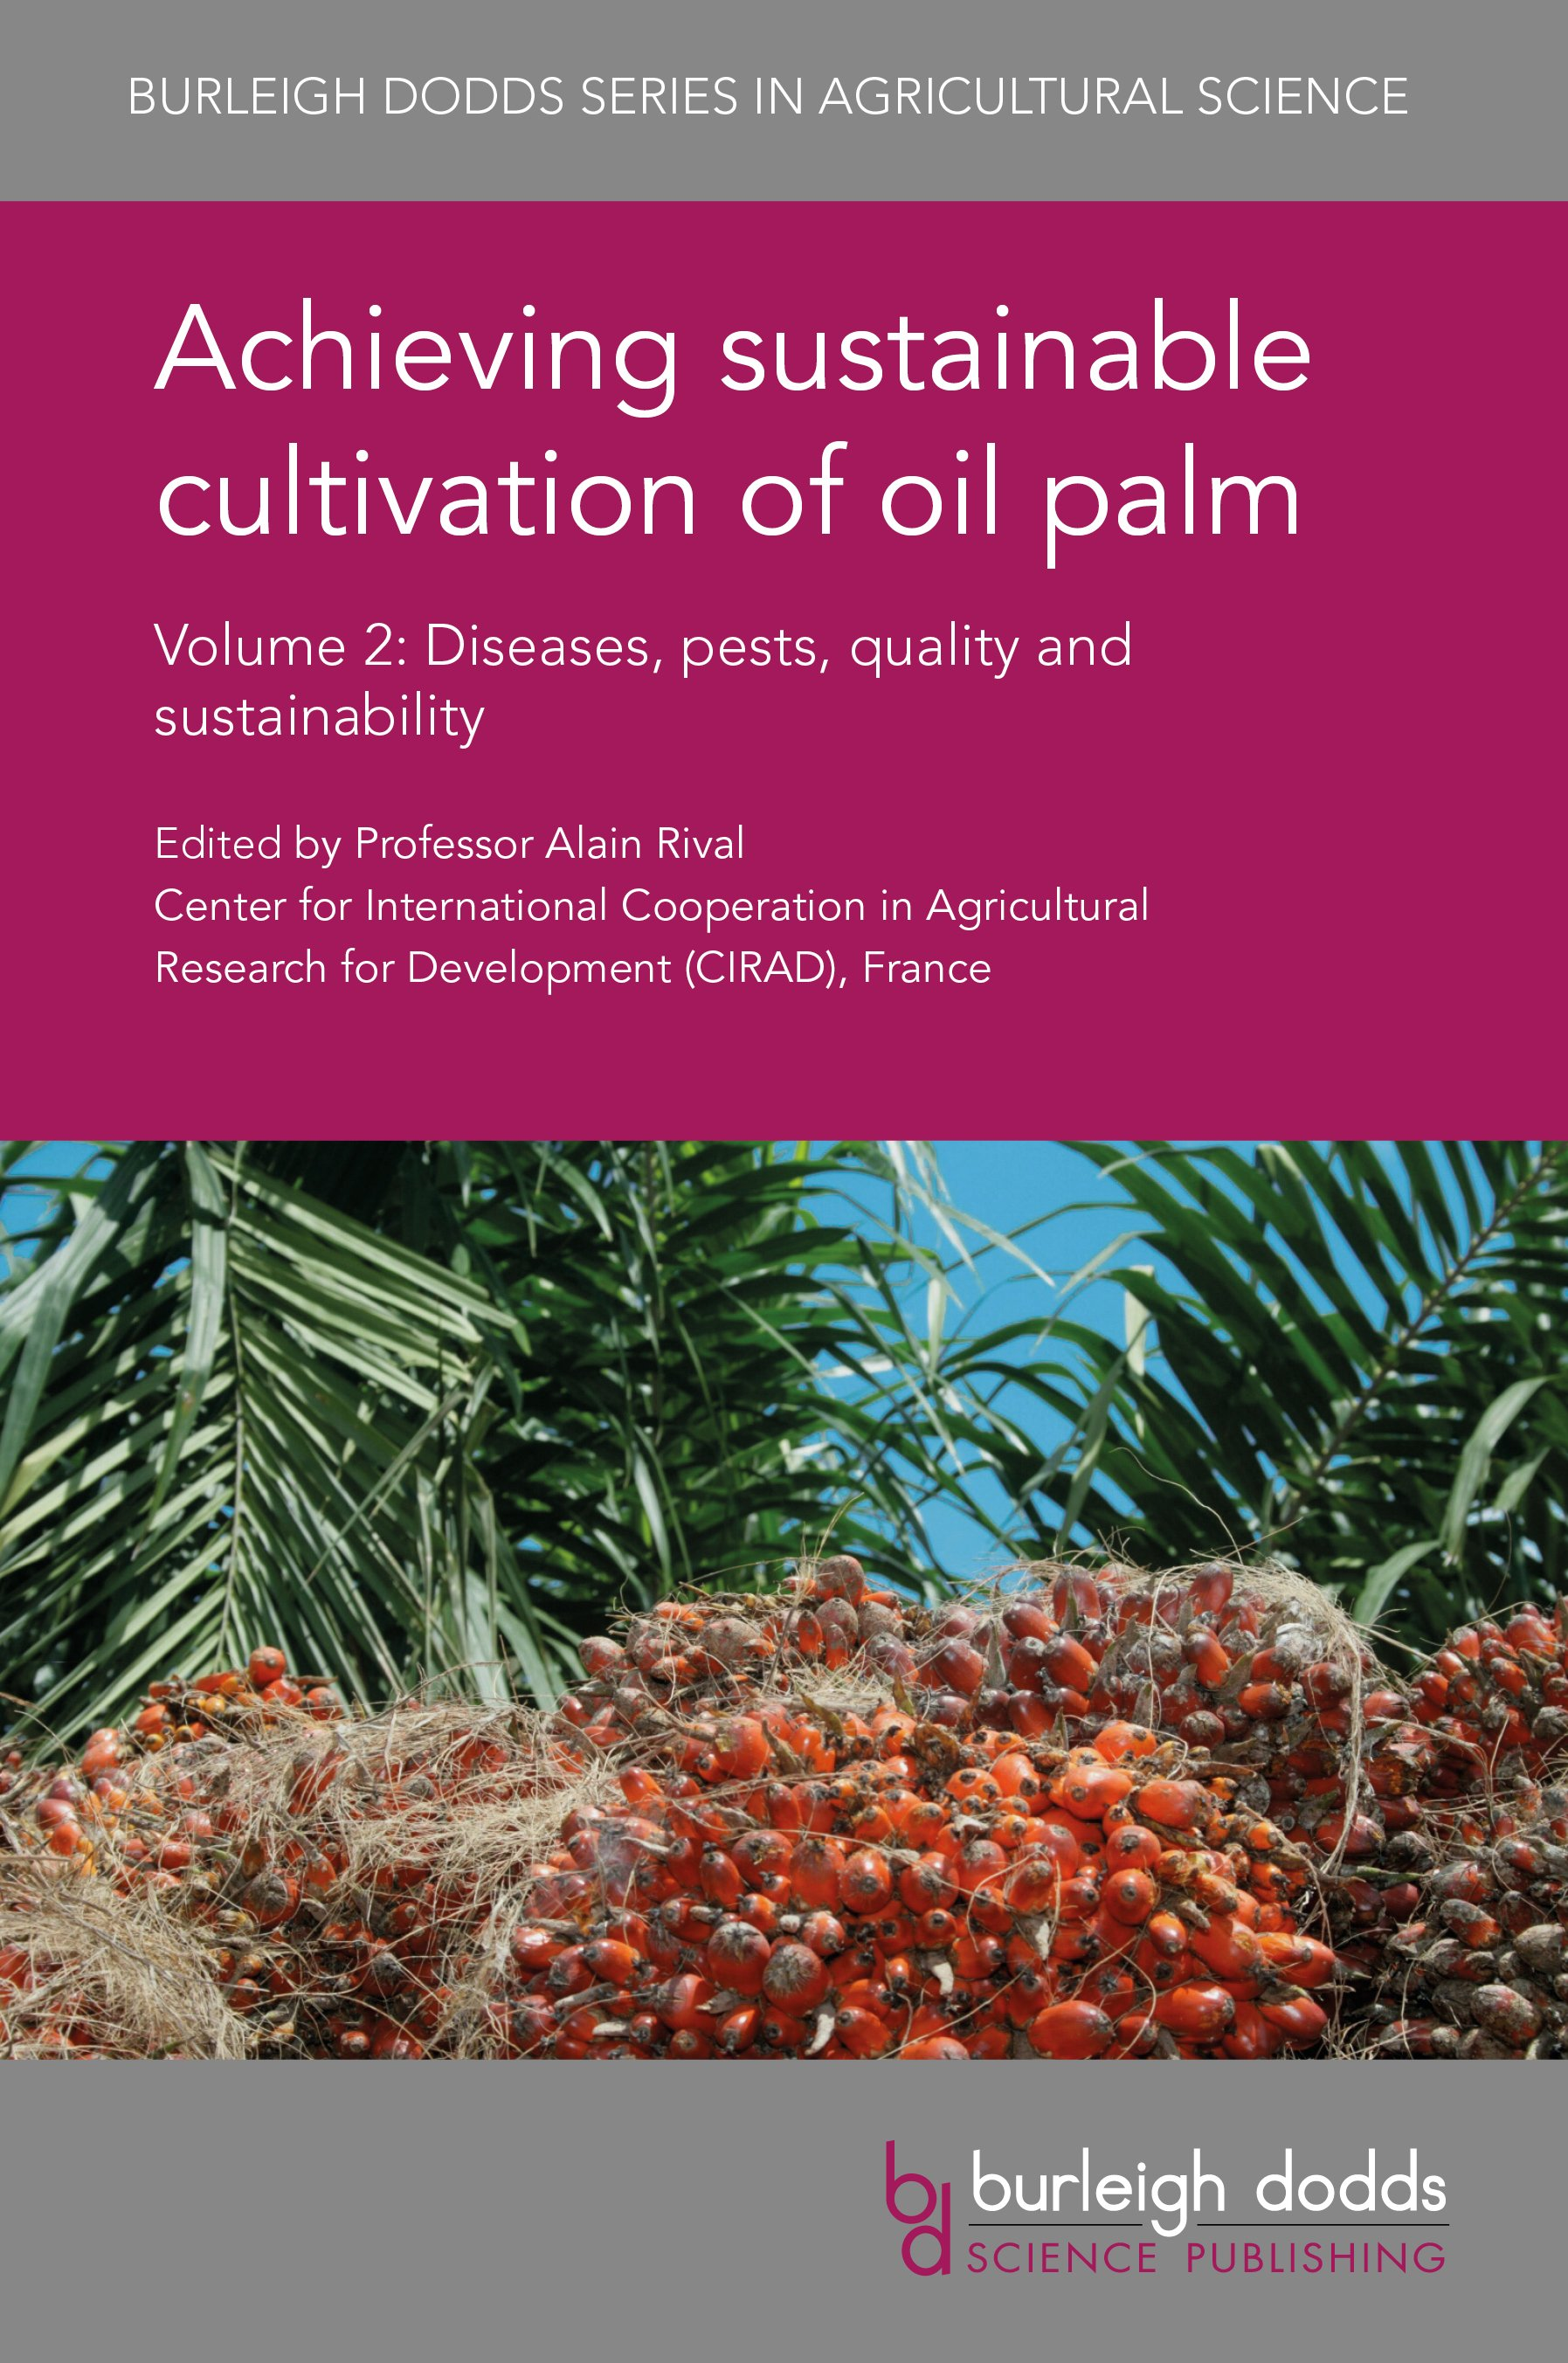 Waste management and recycling in oil palm cultivation Salman Zafar, BioEnergy Consult, India